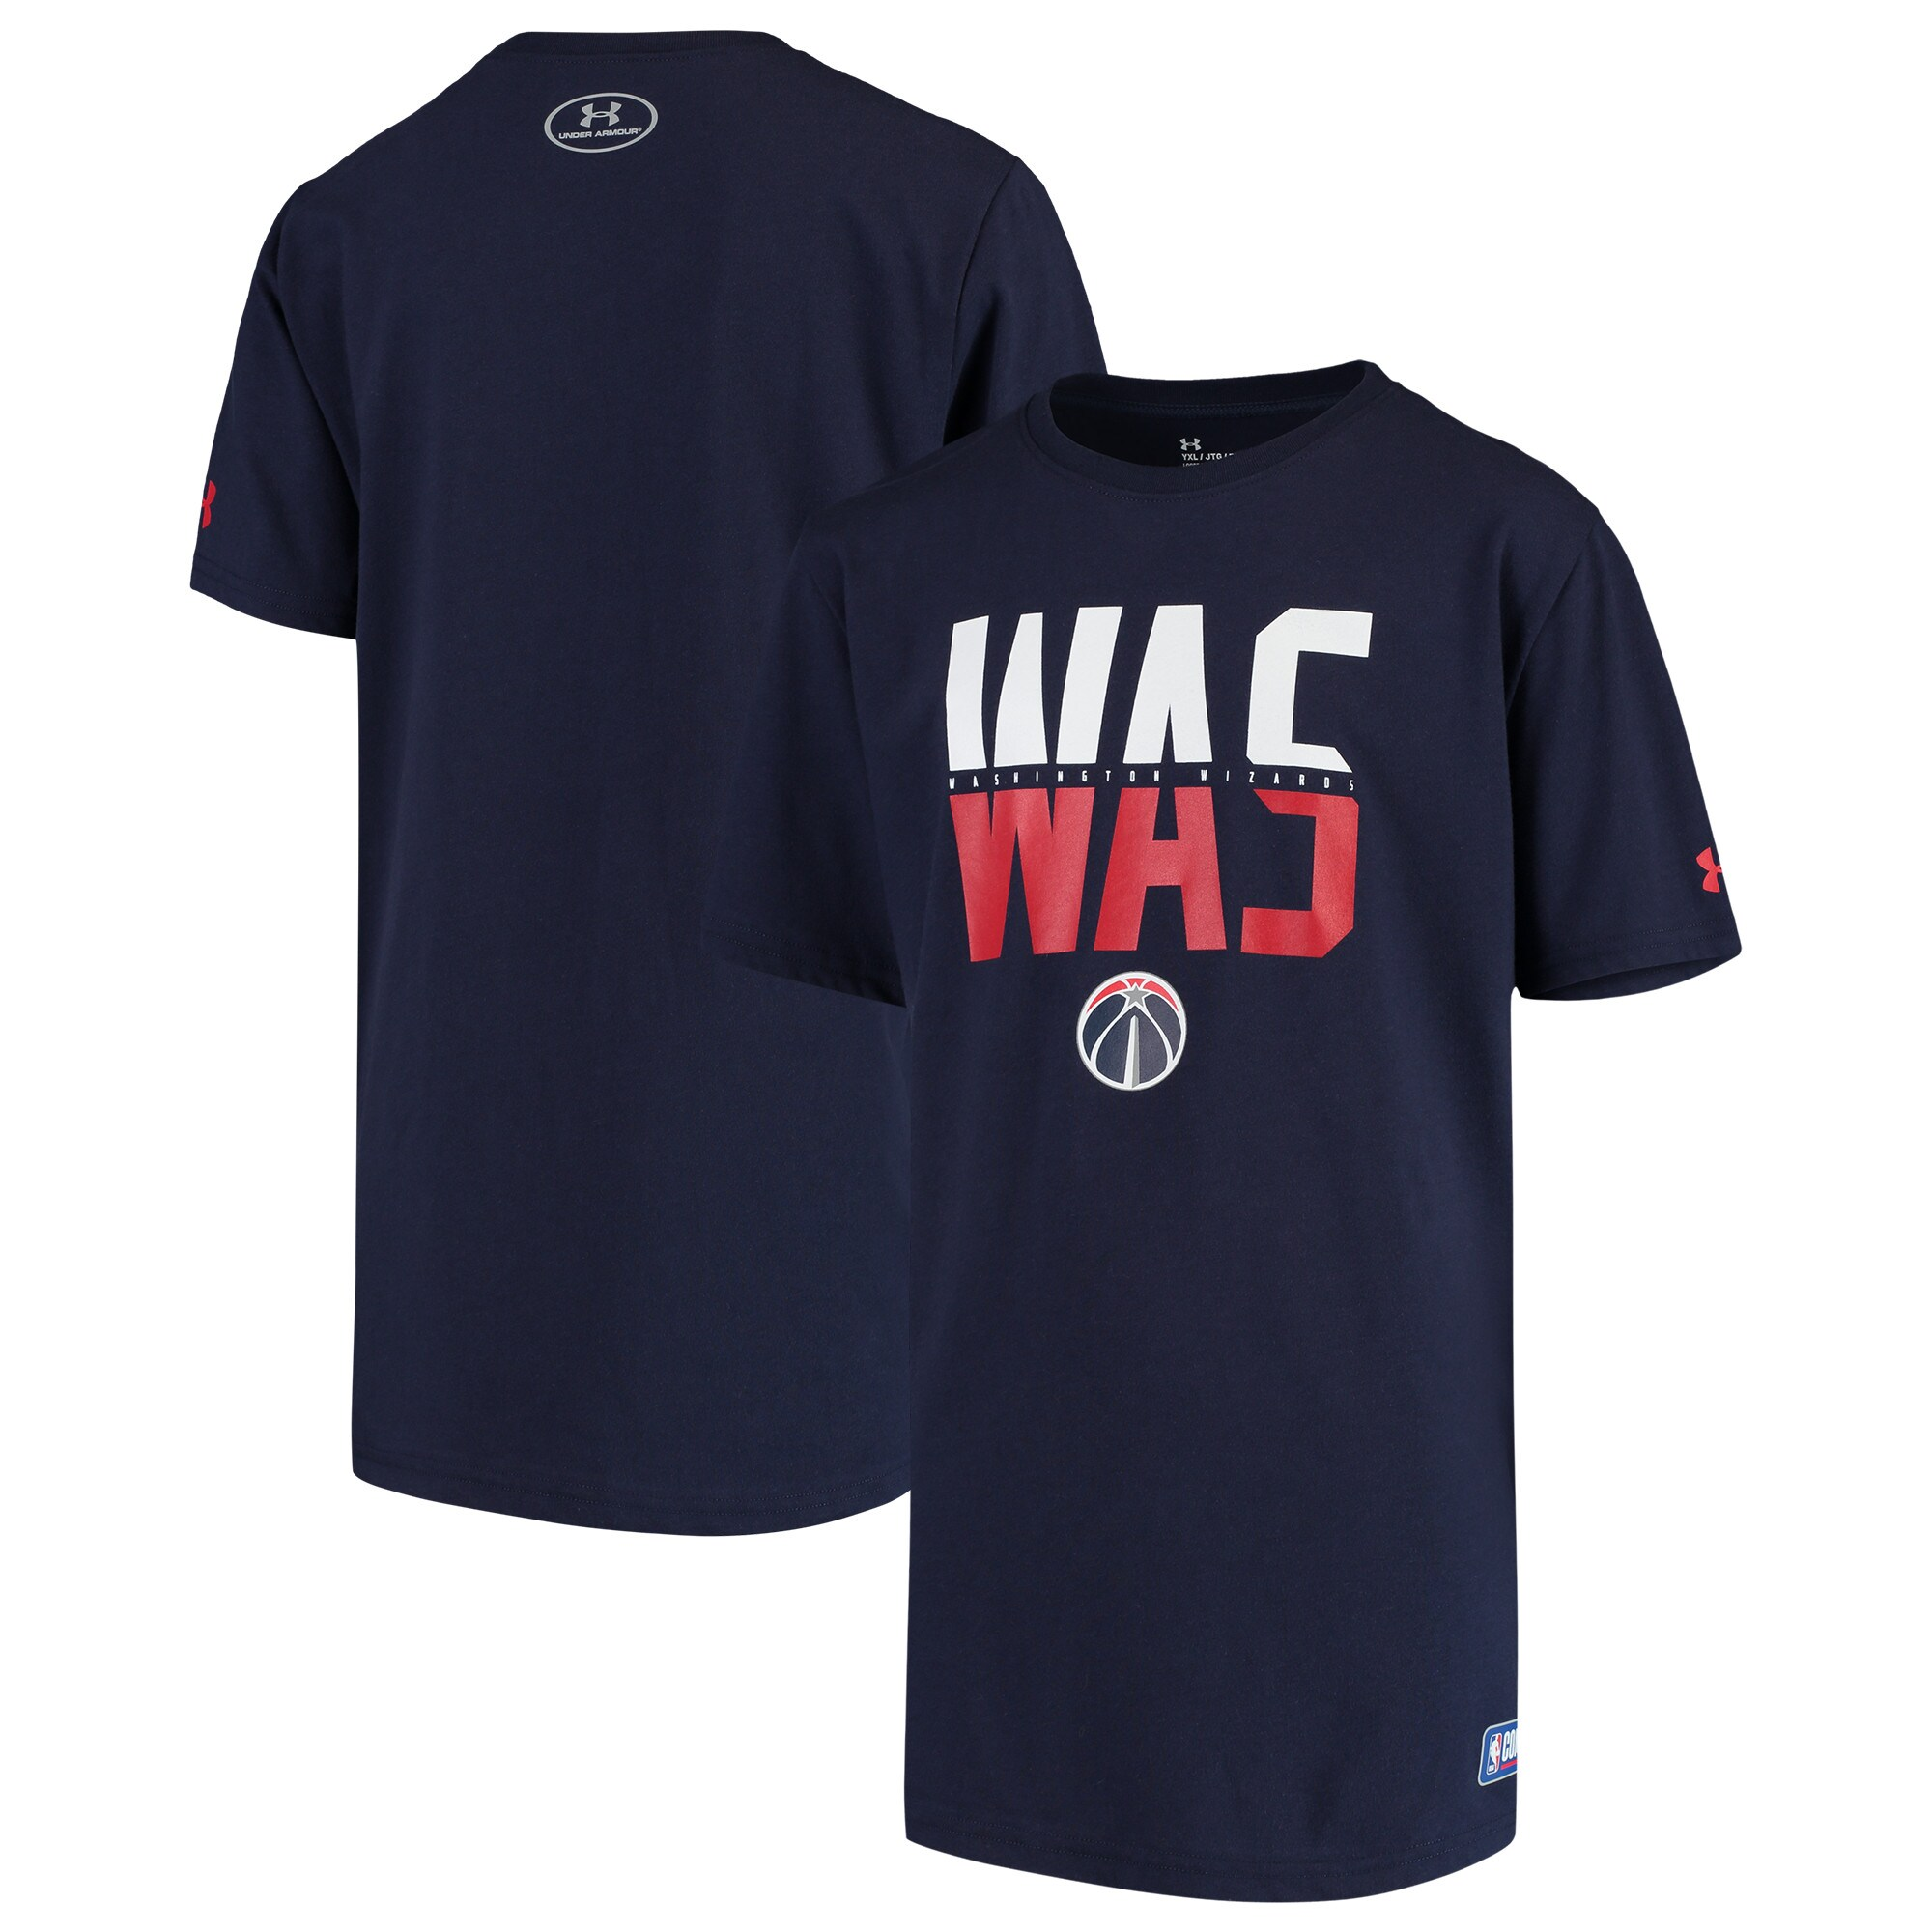 Washington Wizards Under Armour Youth Combine Authentic City Performance T-Shirt - Navy